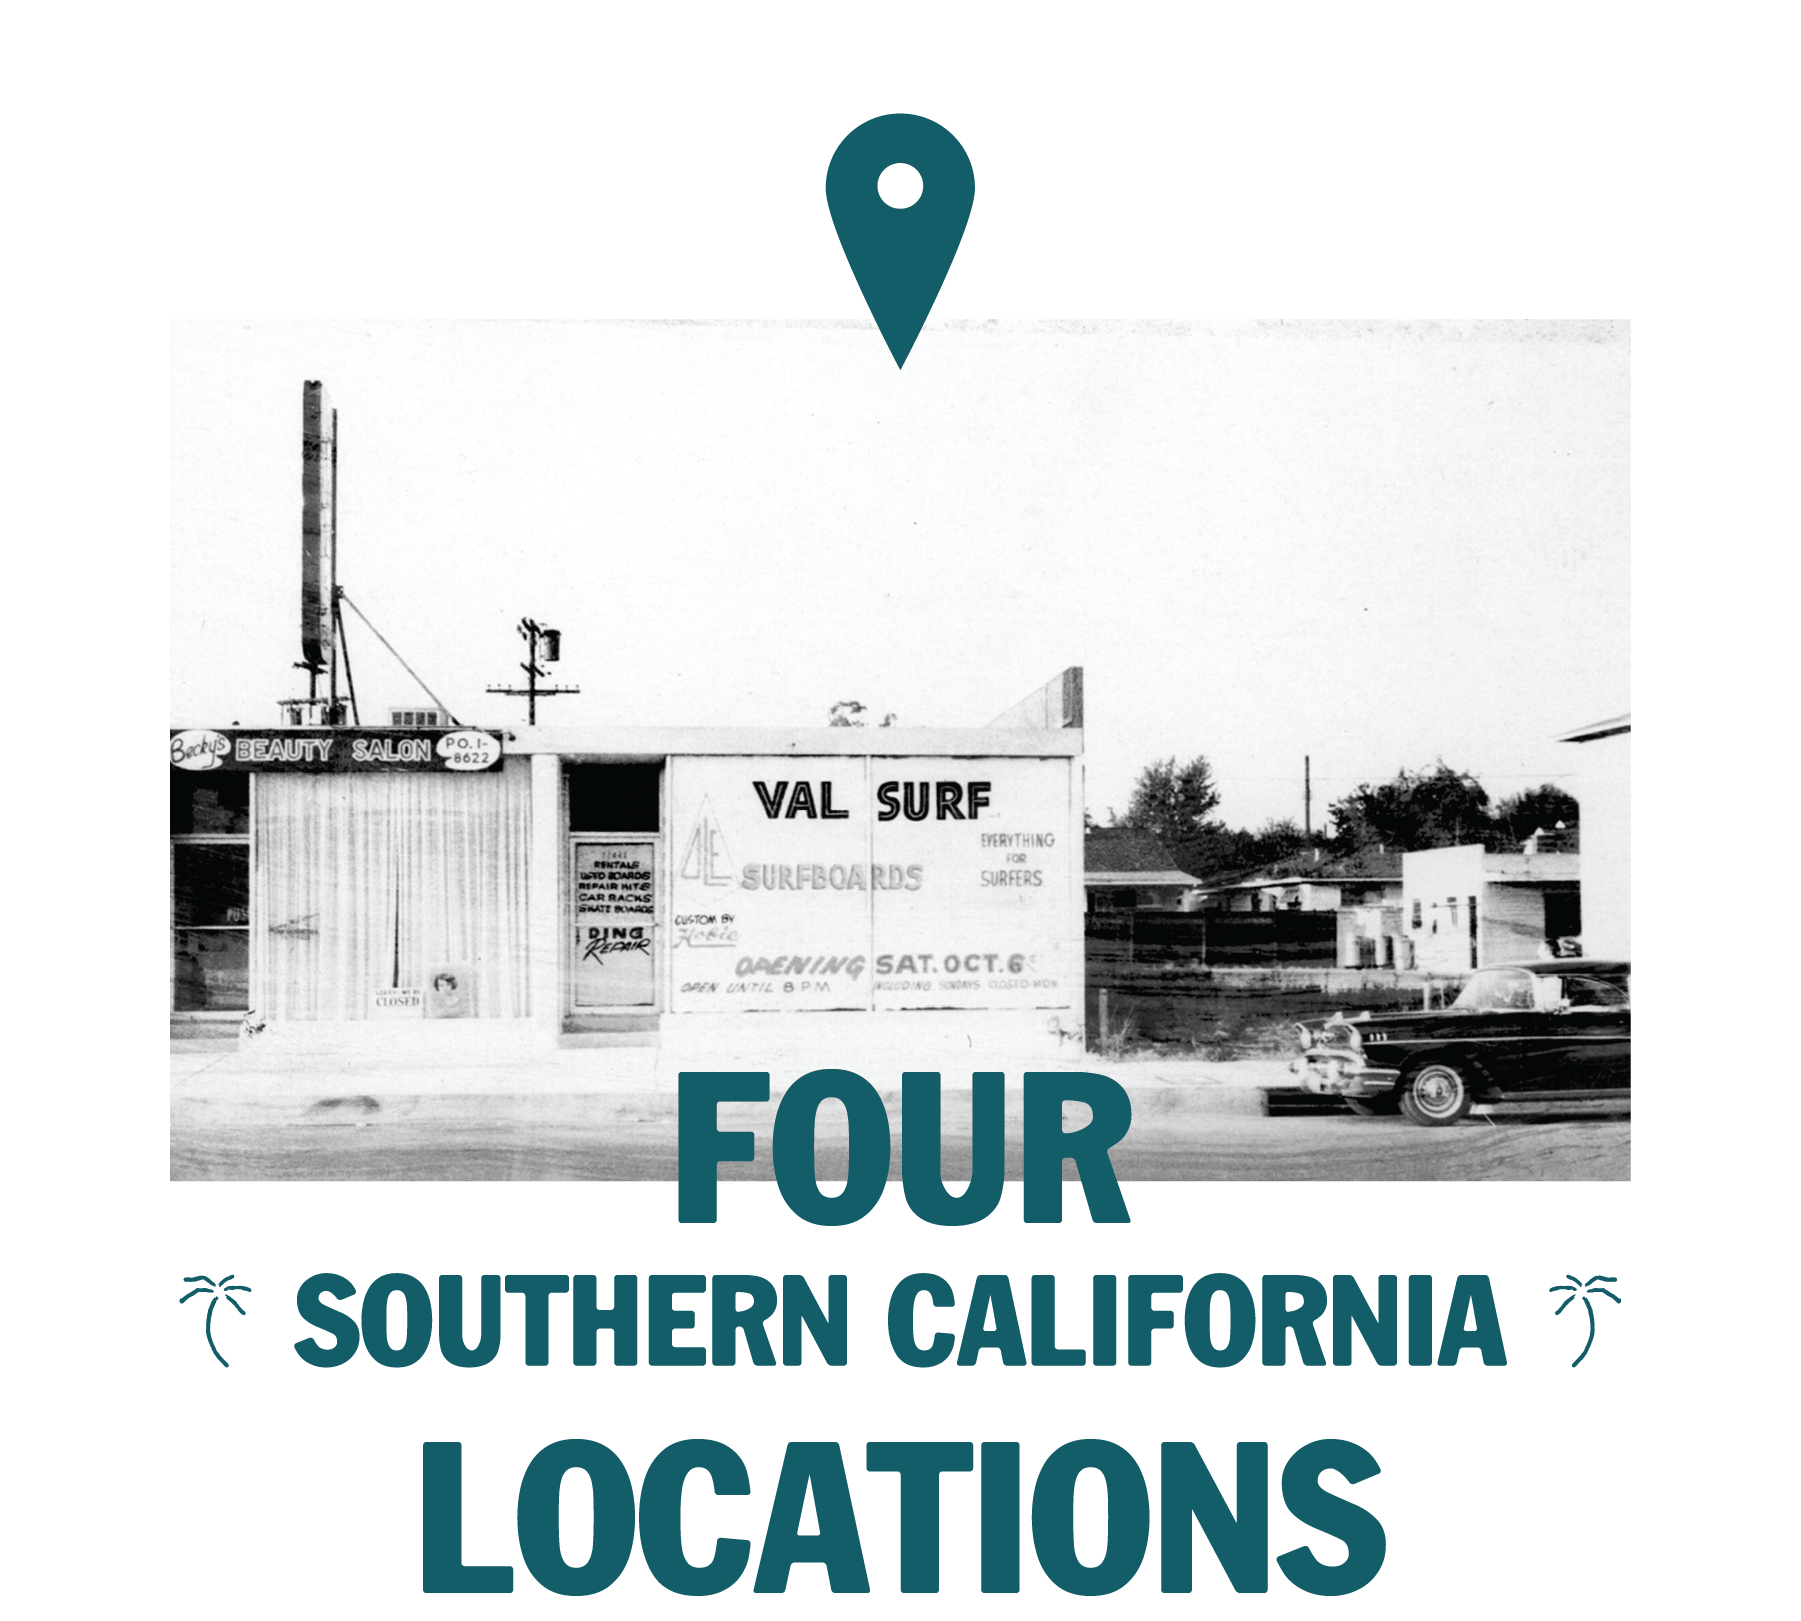 four southern california locations - vintage photo of val surf store front